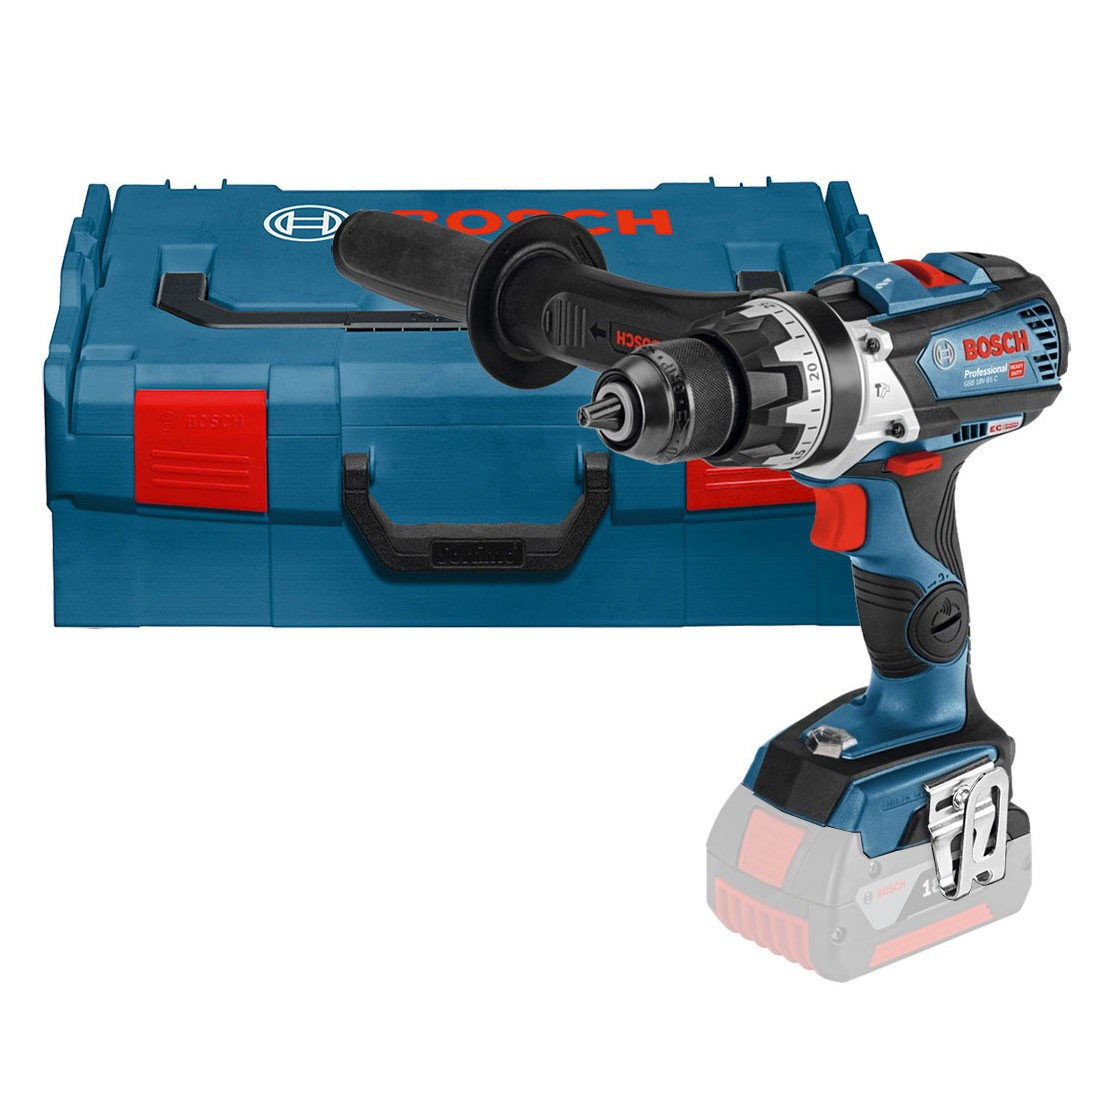 bosch gsb 18 v 85 c robust series brushless combi drill body only in l boxx carry case. Black Bedroom Furniture Sets. Home Design Ideas